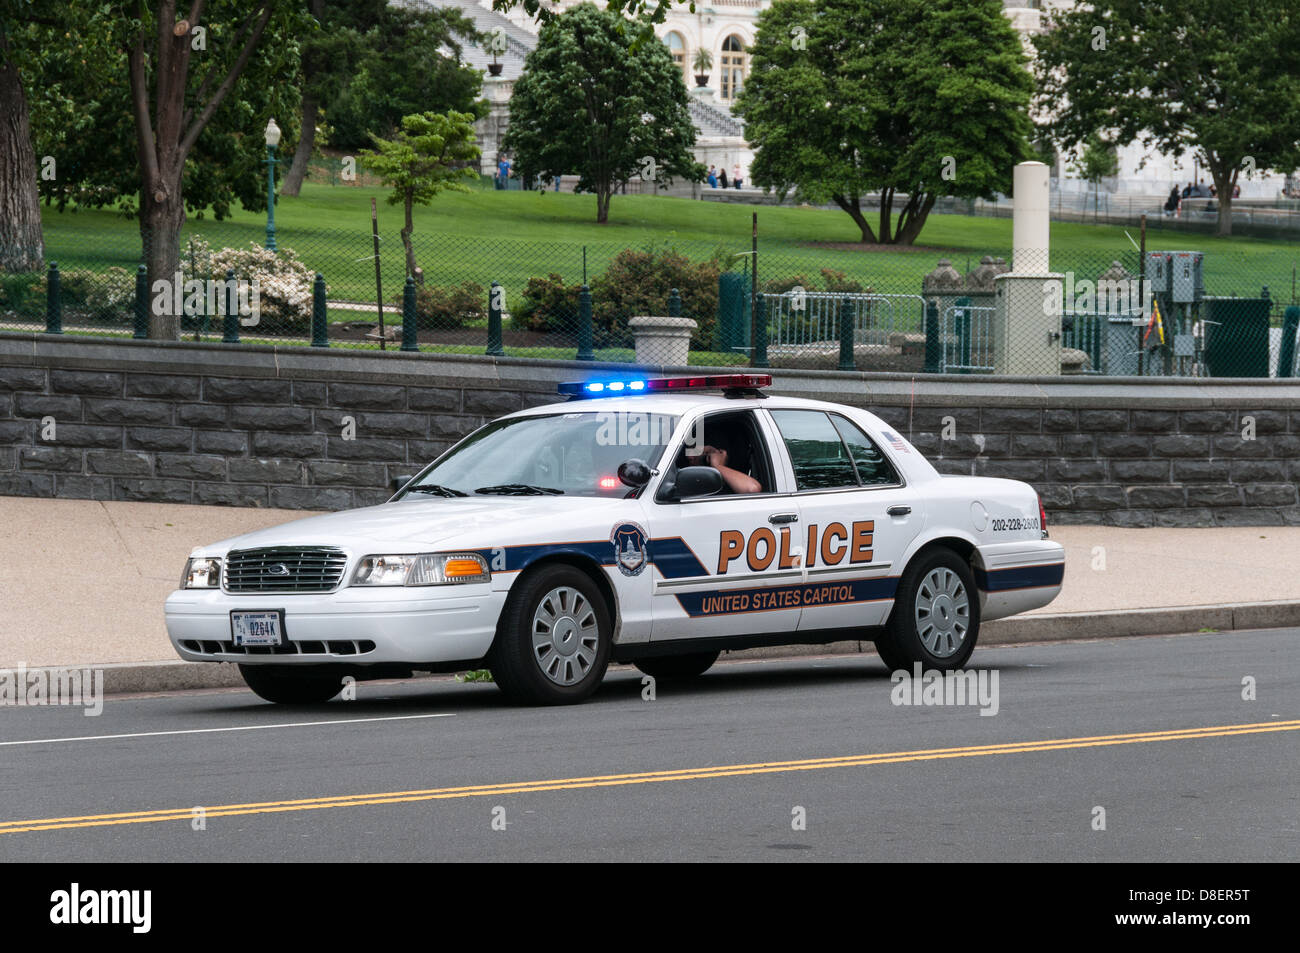 United States Capitol Police Ford Crown Victoria Police Car Washington Dc Stock Image